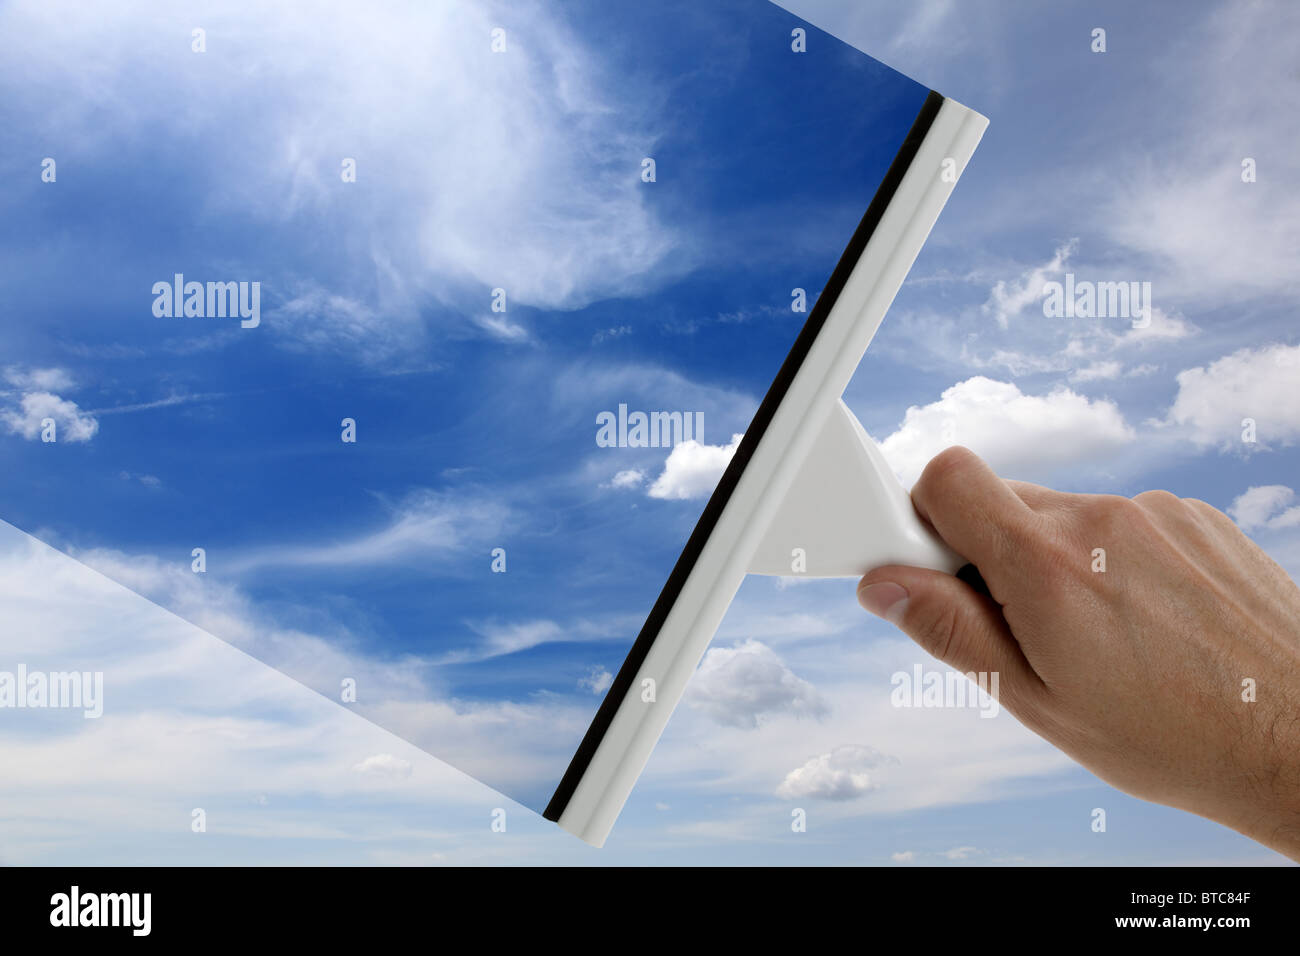 Clear blue sky - Stock Image